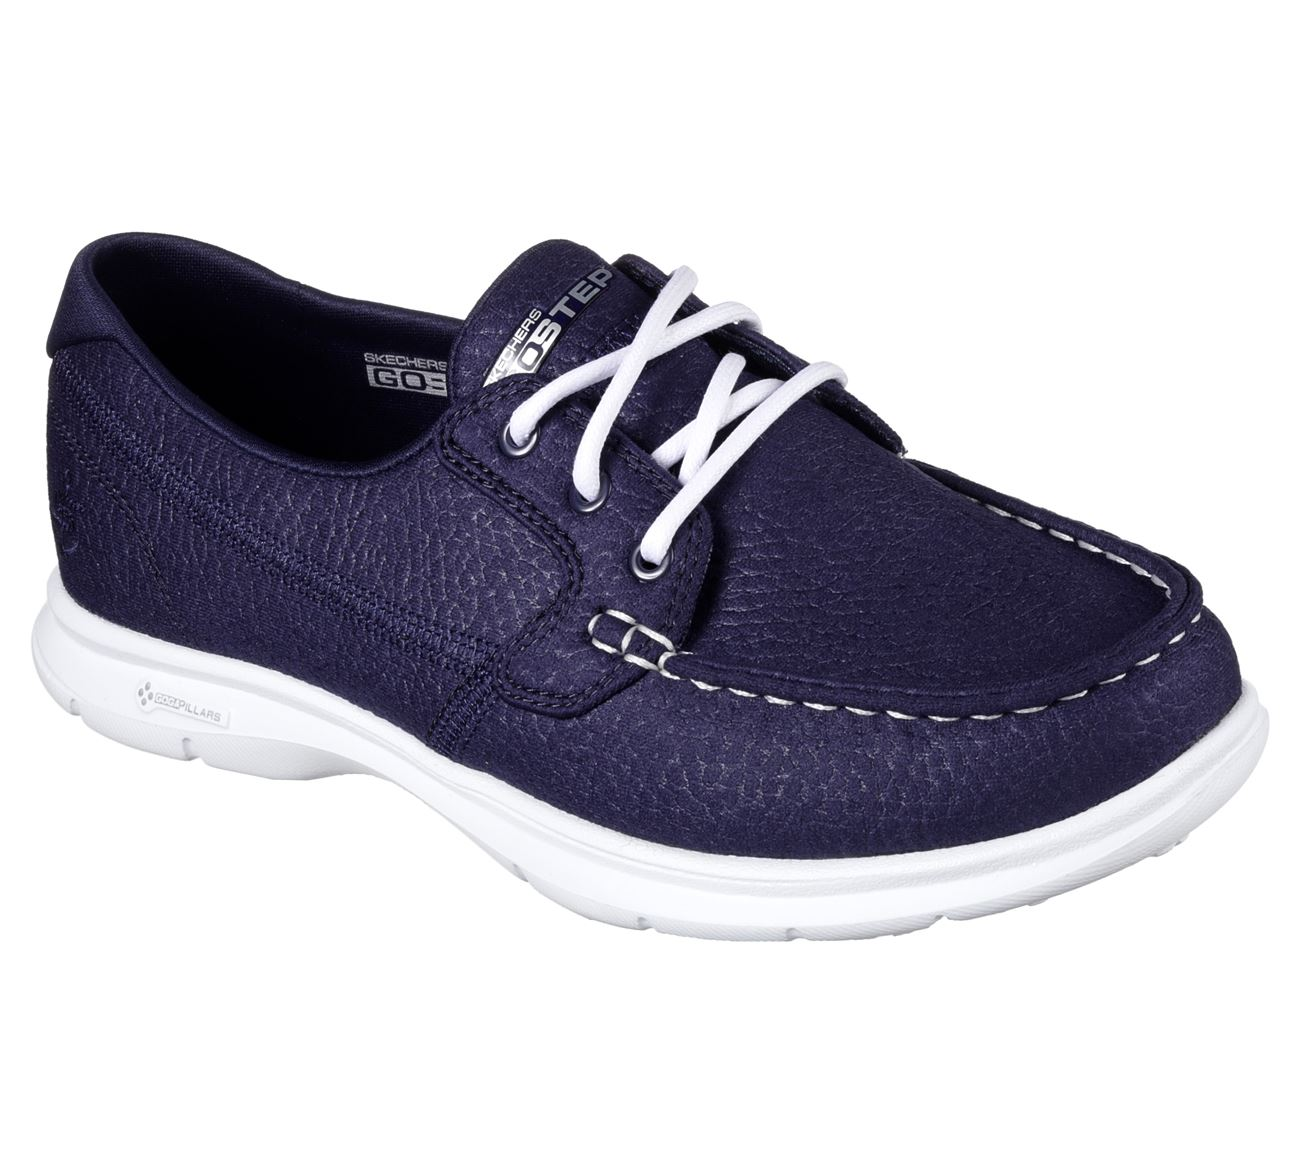 Womens Go Step-Riptide Boat Shoes Skechers lsJrqXs